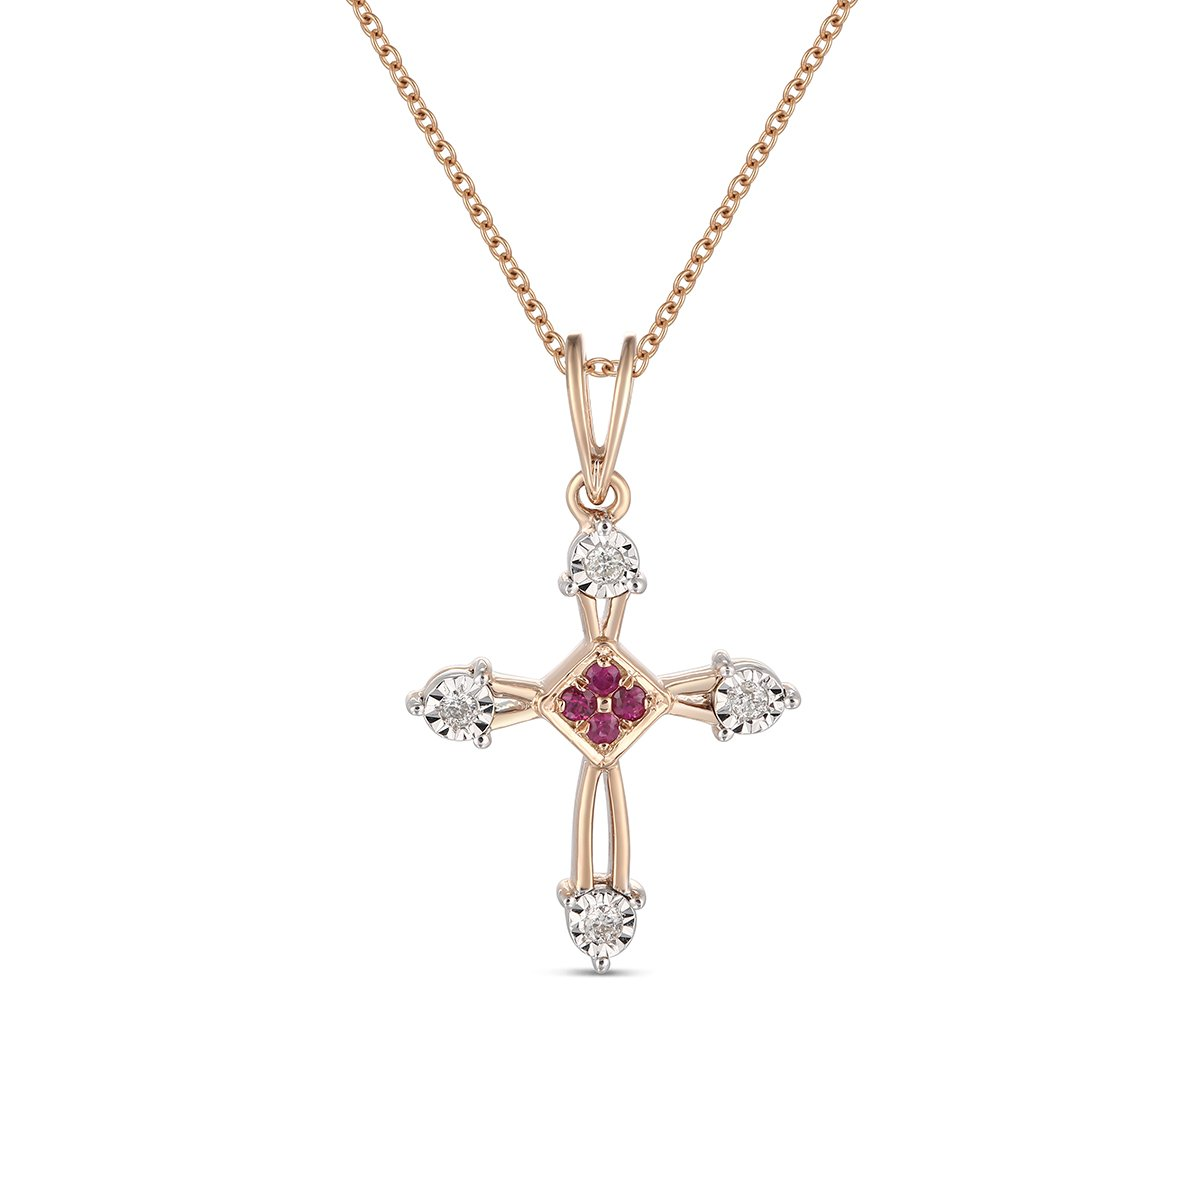 Ferhe New York Mother's Day Gift, 14K Gold Almighty Cross Pendant with Diamond & Ruby,Diamond Almighty Cross Pendant, Ruby Almighty Cross Pendant,Pendant Only- NO Chain